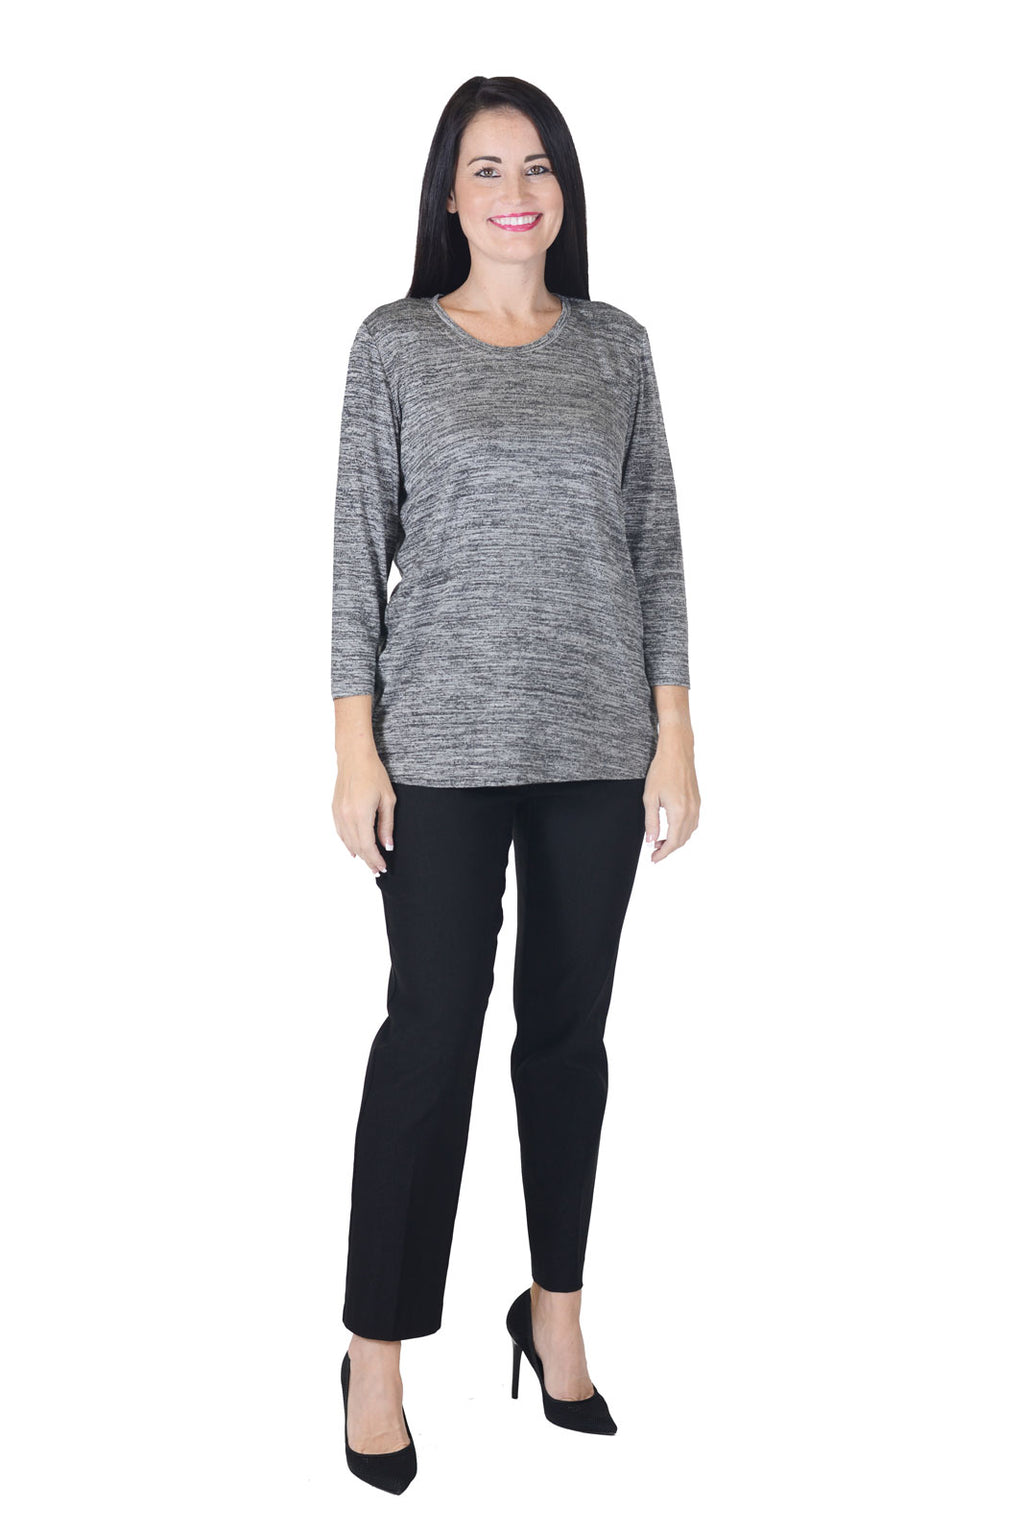 Lisette L Montreal 801 Ankle Pant